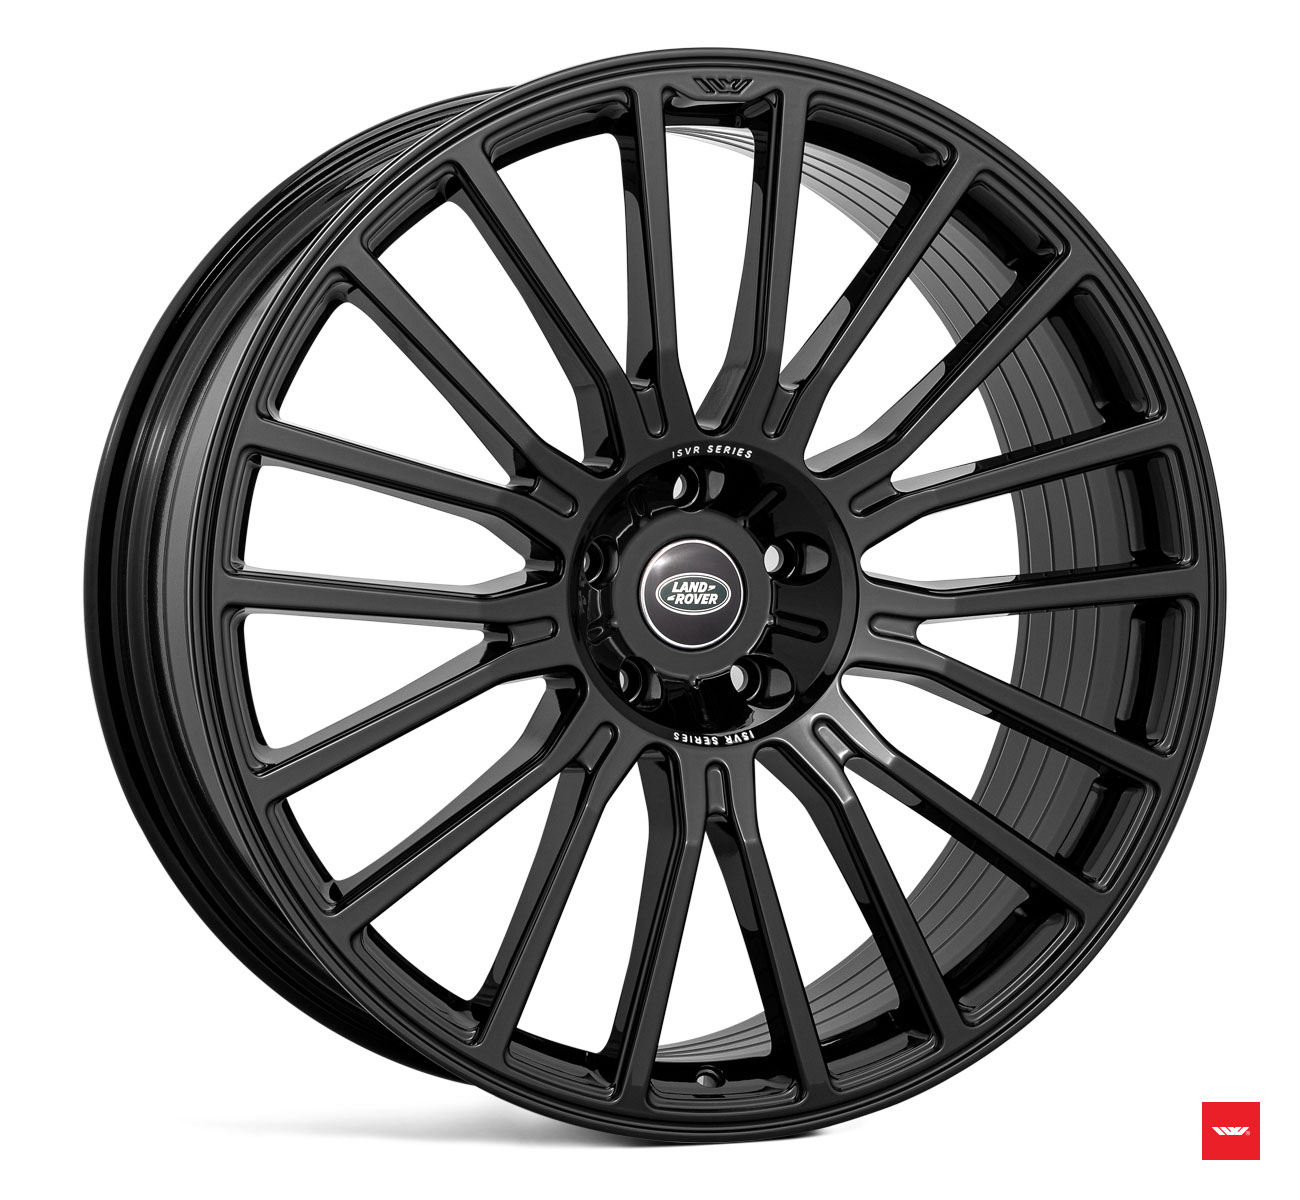 "NEW 22"" ISPIRI ISVR1 MULTISPOKE ALLOY WHEELS IN CORSA BLACK"